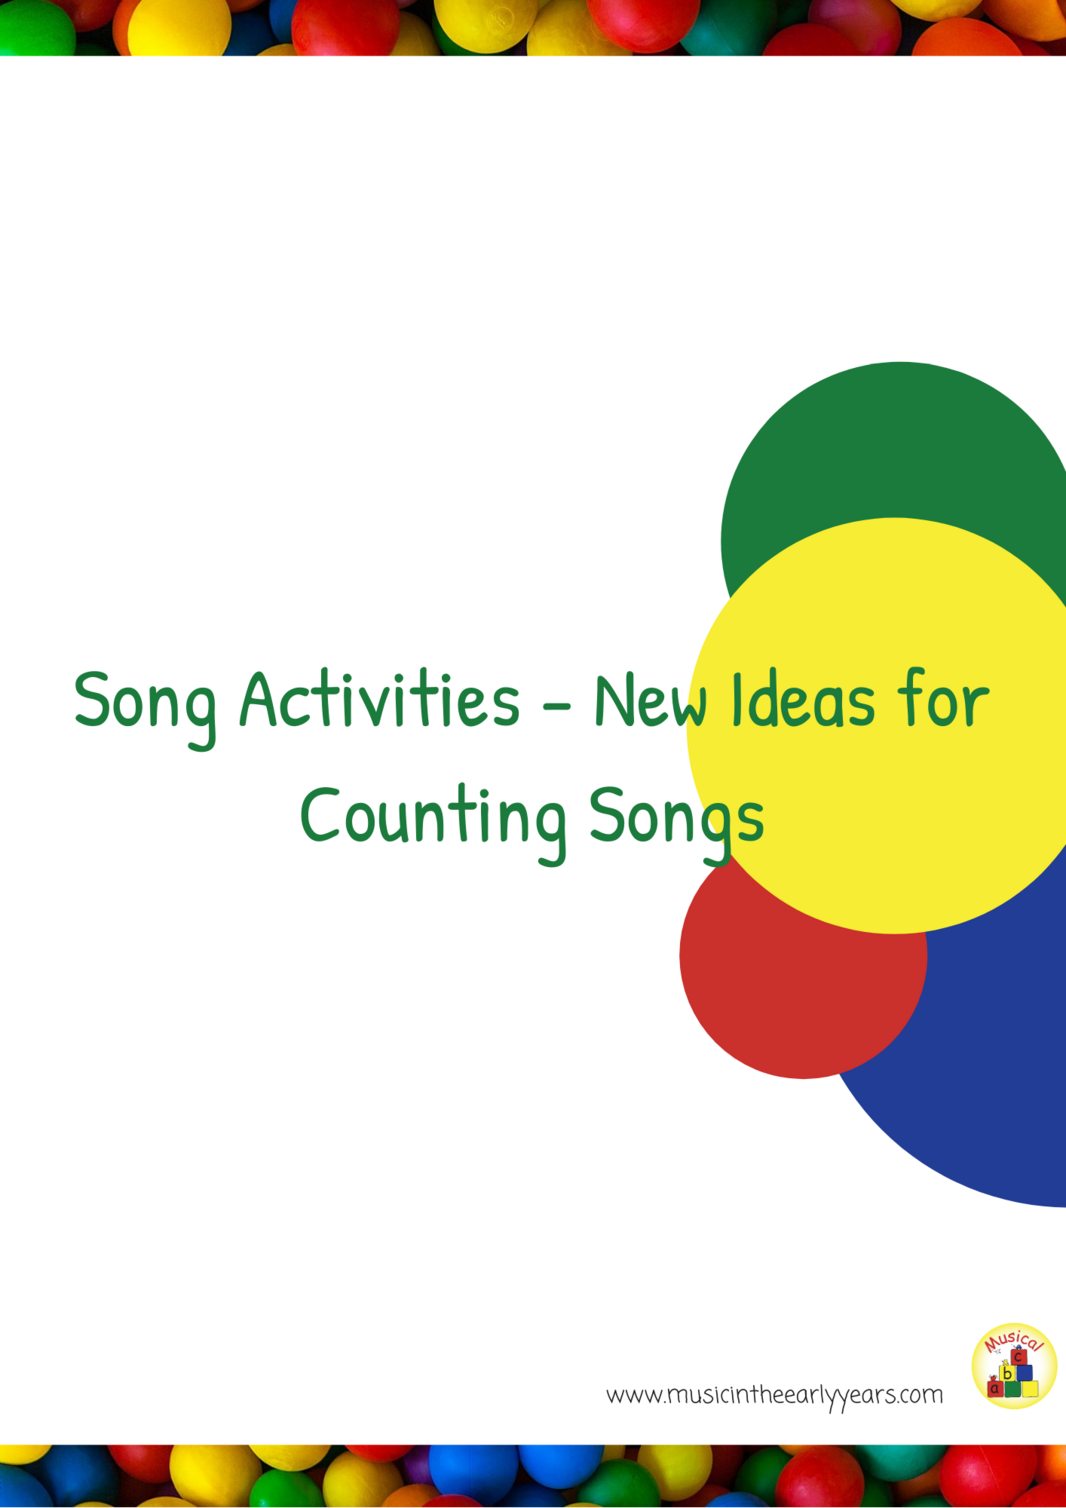 New Ideas for Counting Songs Front page of booklets